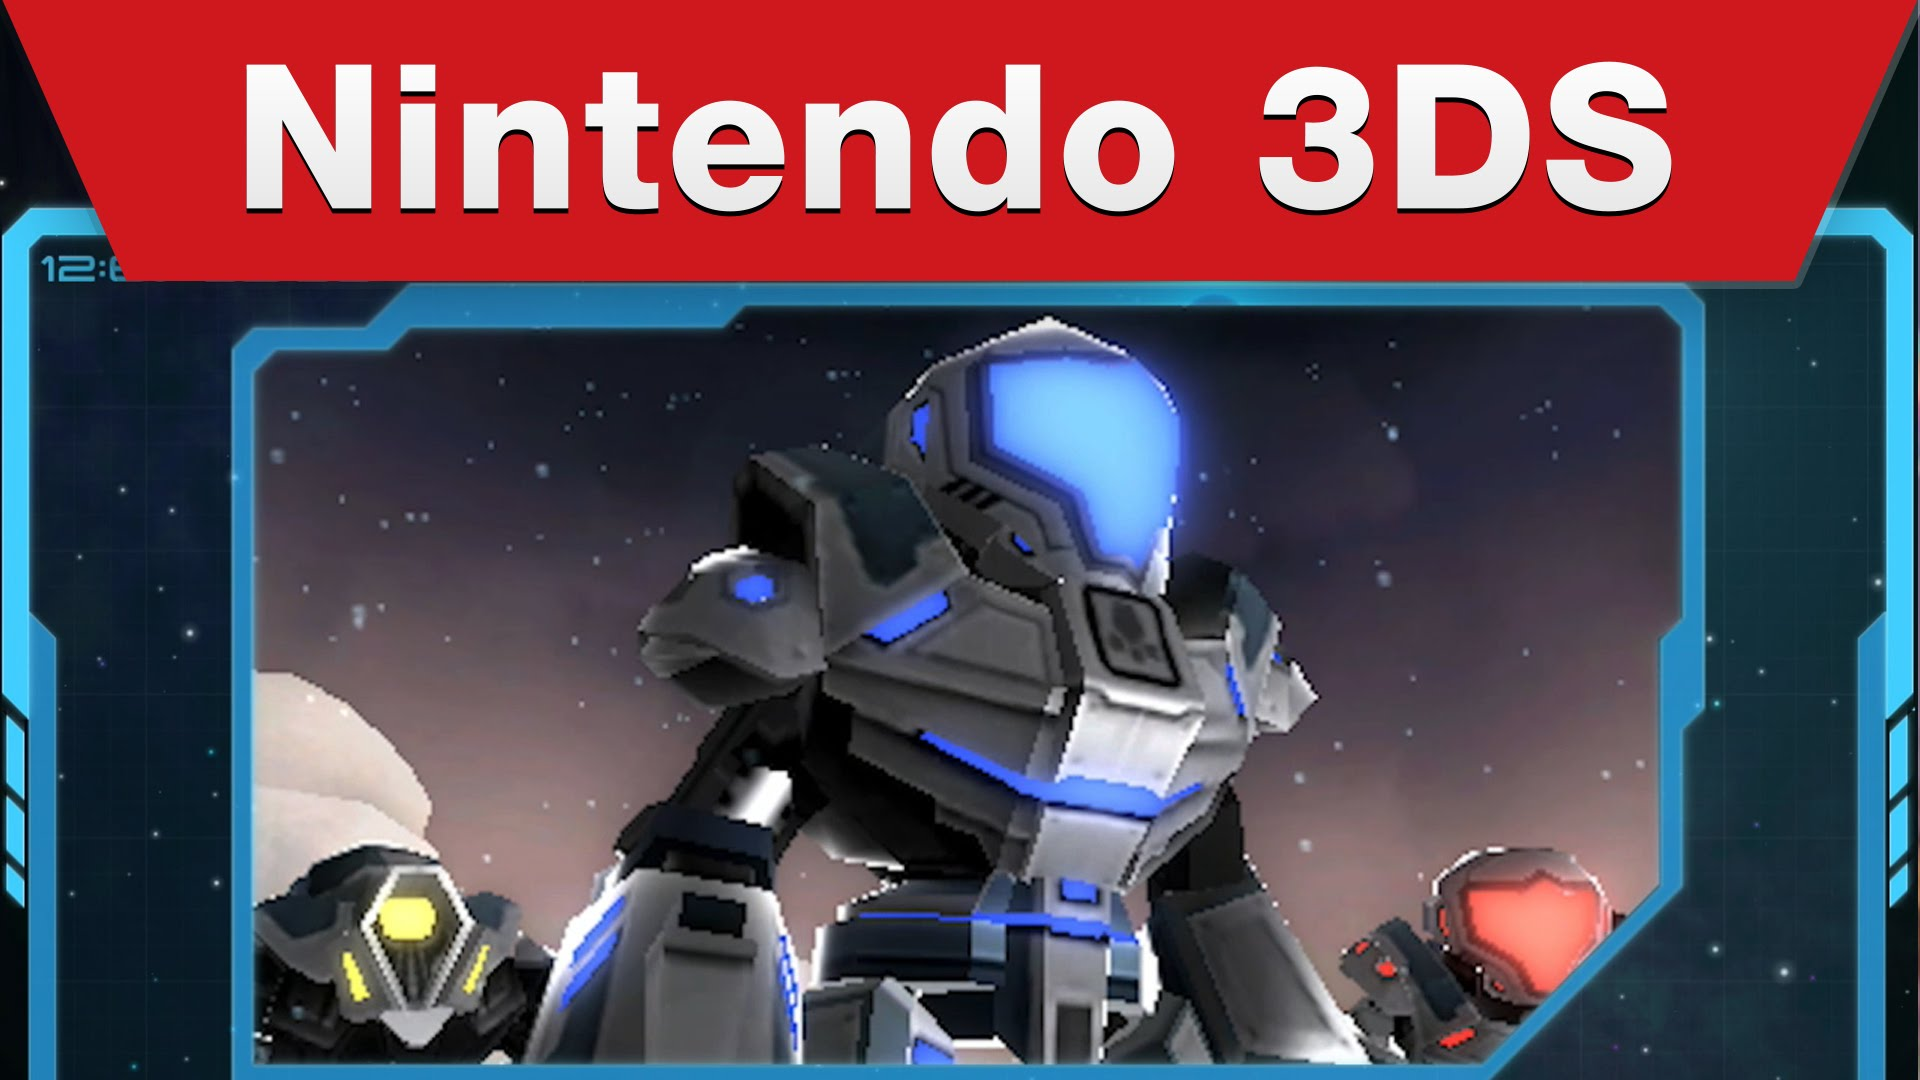 Metroid Prime: Federation Force - Project Golem Trailer